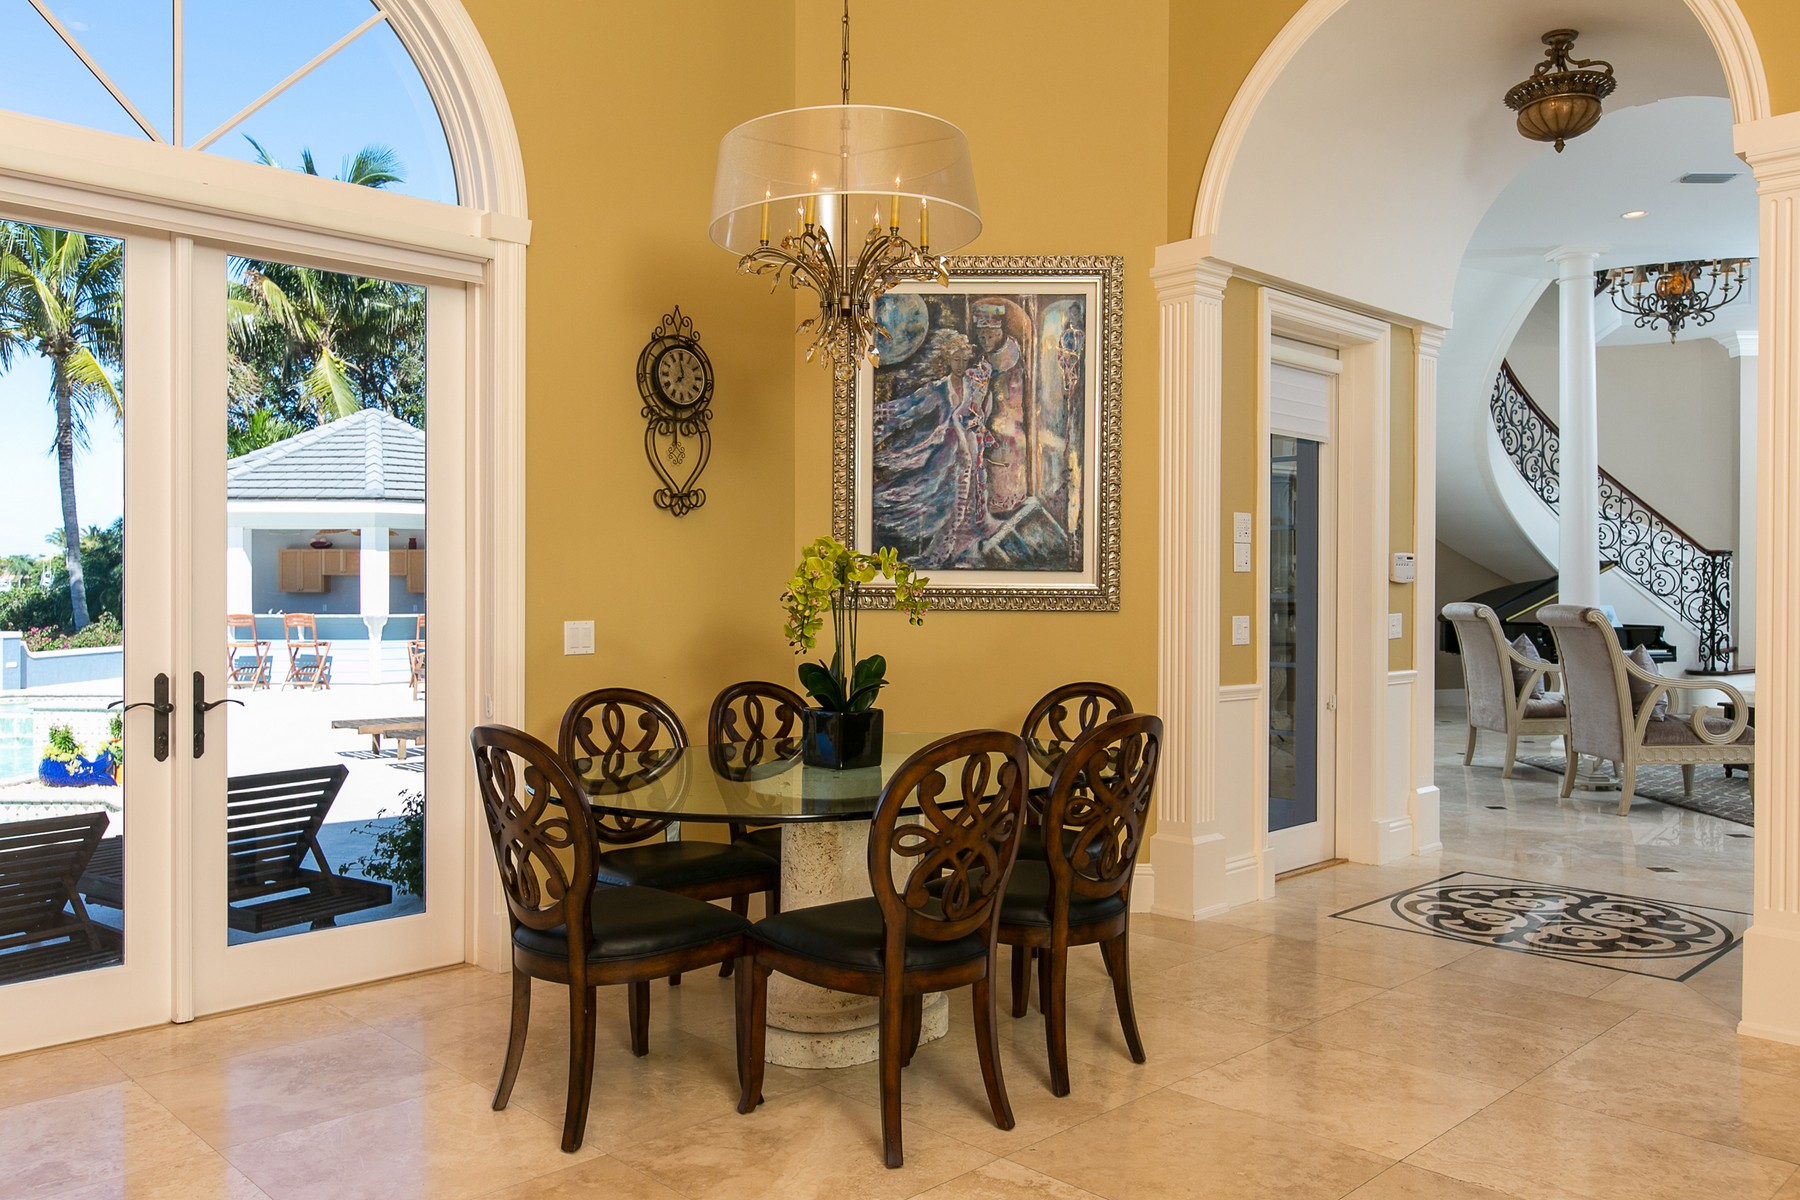 Additional photo for property listing at Yachtsman Dream Home in the Moorings 101 Springline Drive Vero Beach, Florida 32963 United States